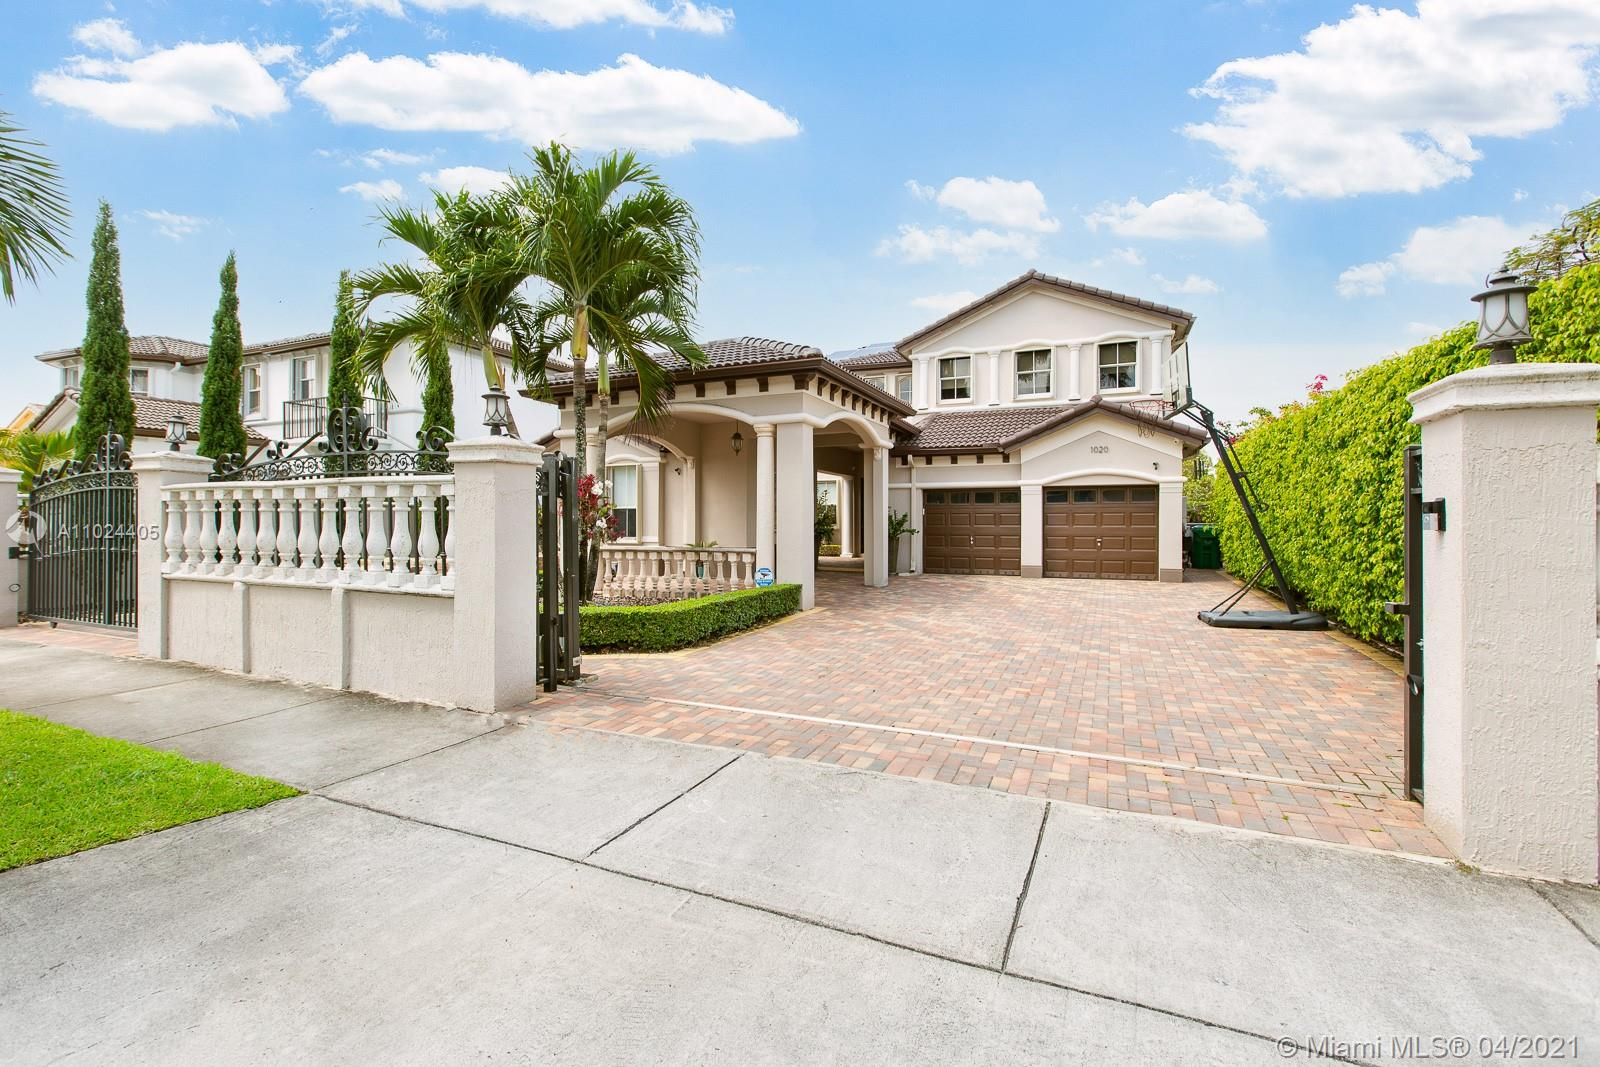 Splendid Grand Lakes one of a kind 4bed/3.5bath/2car garage+porte cochere/gated LAKEFRONT pool home has been remodeled w/ top quality finishes. This fine home offers separate 1bed/1bath guest quarters w/ courtyard that can serve as office,bedrm,exercise rm etc. Main home offers 3bed+2.5baths w/ new modern white kitchen cabs+quartz tops+center island open to spacious fam room, high ceilings living area & custom glass staircase railings. Master suite offers balcony w/ lake view, large his/hers walk-in closets, & large updated master bath a must see! Energy efficient home has solar panels for reduced utility bills & accordion shutters for all openings.  All pavered exterior areas w/ refinished pool/spa+new equipment. Exterior BBQ cooking area by lake. Come Home to Grand Lakes & Live Well!